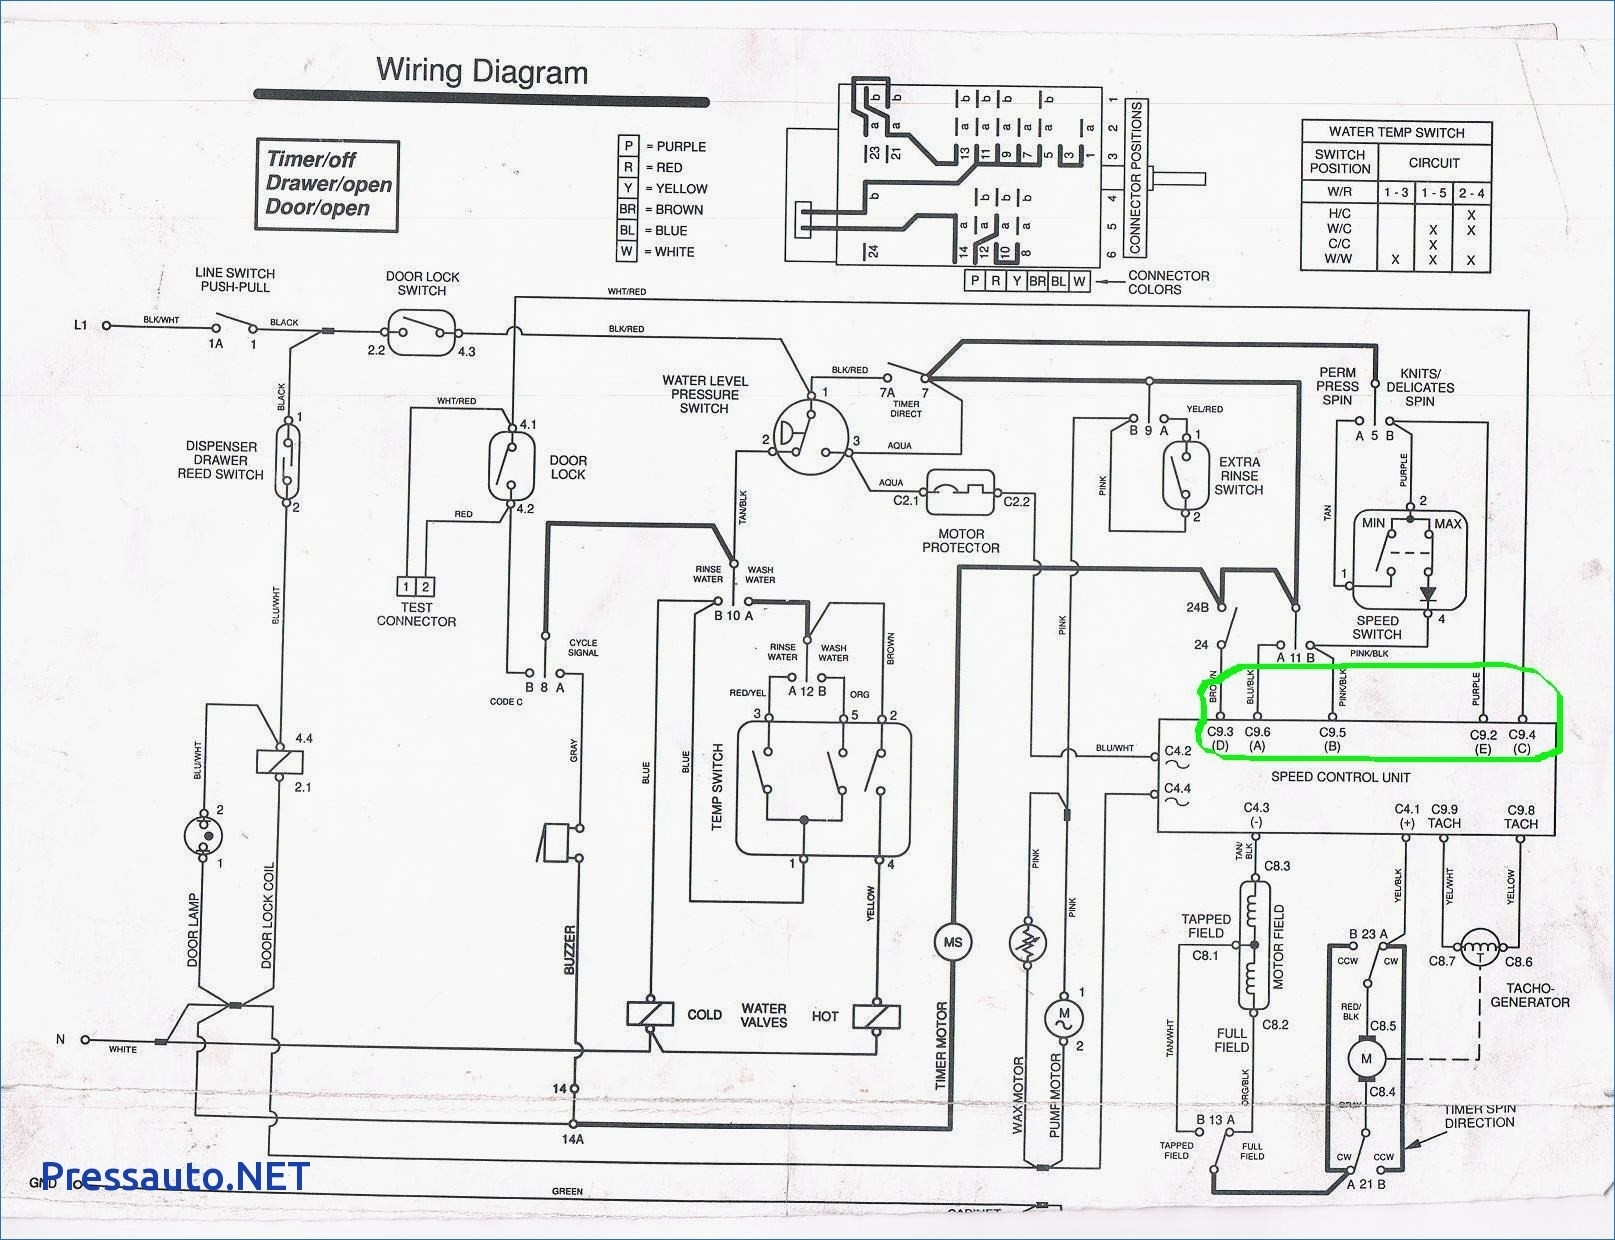 Wiring Diagram Washing Machine Lg